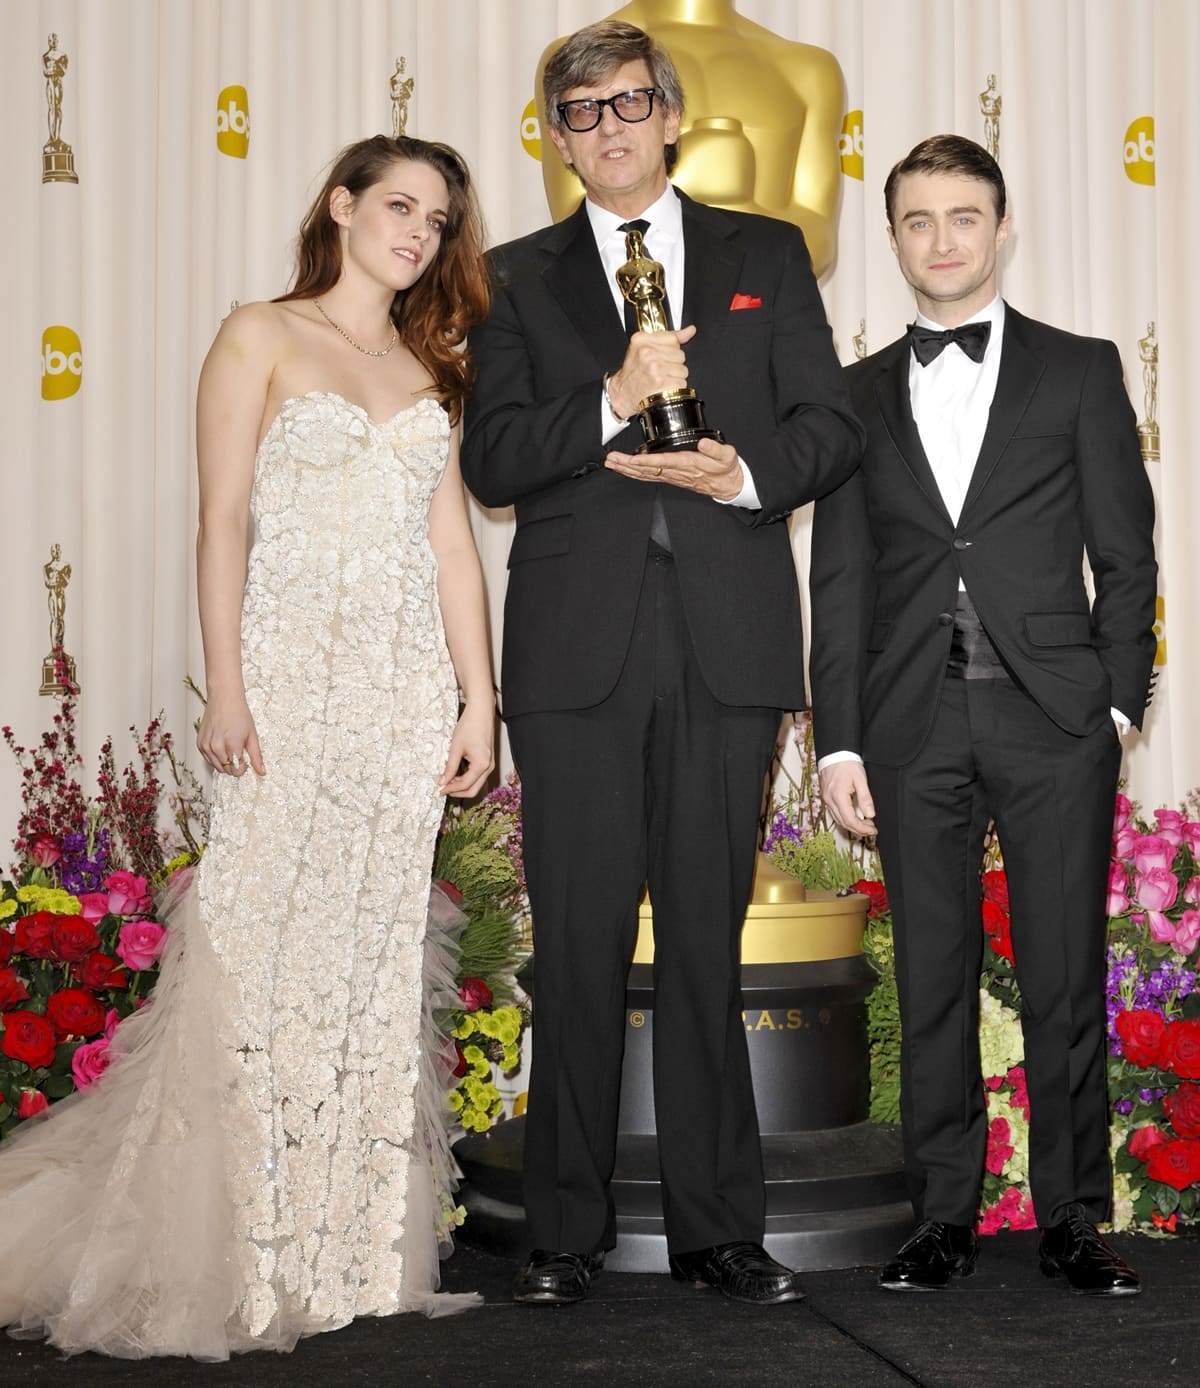 Actress Kristen Stewart, Rick Carter, and Daniel Radcliffe at the 85th Annual Academy Awards Press Room